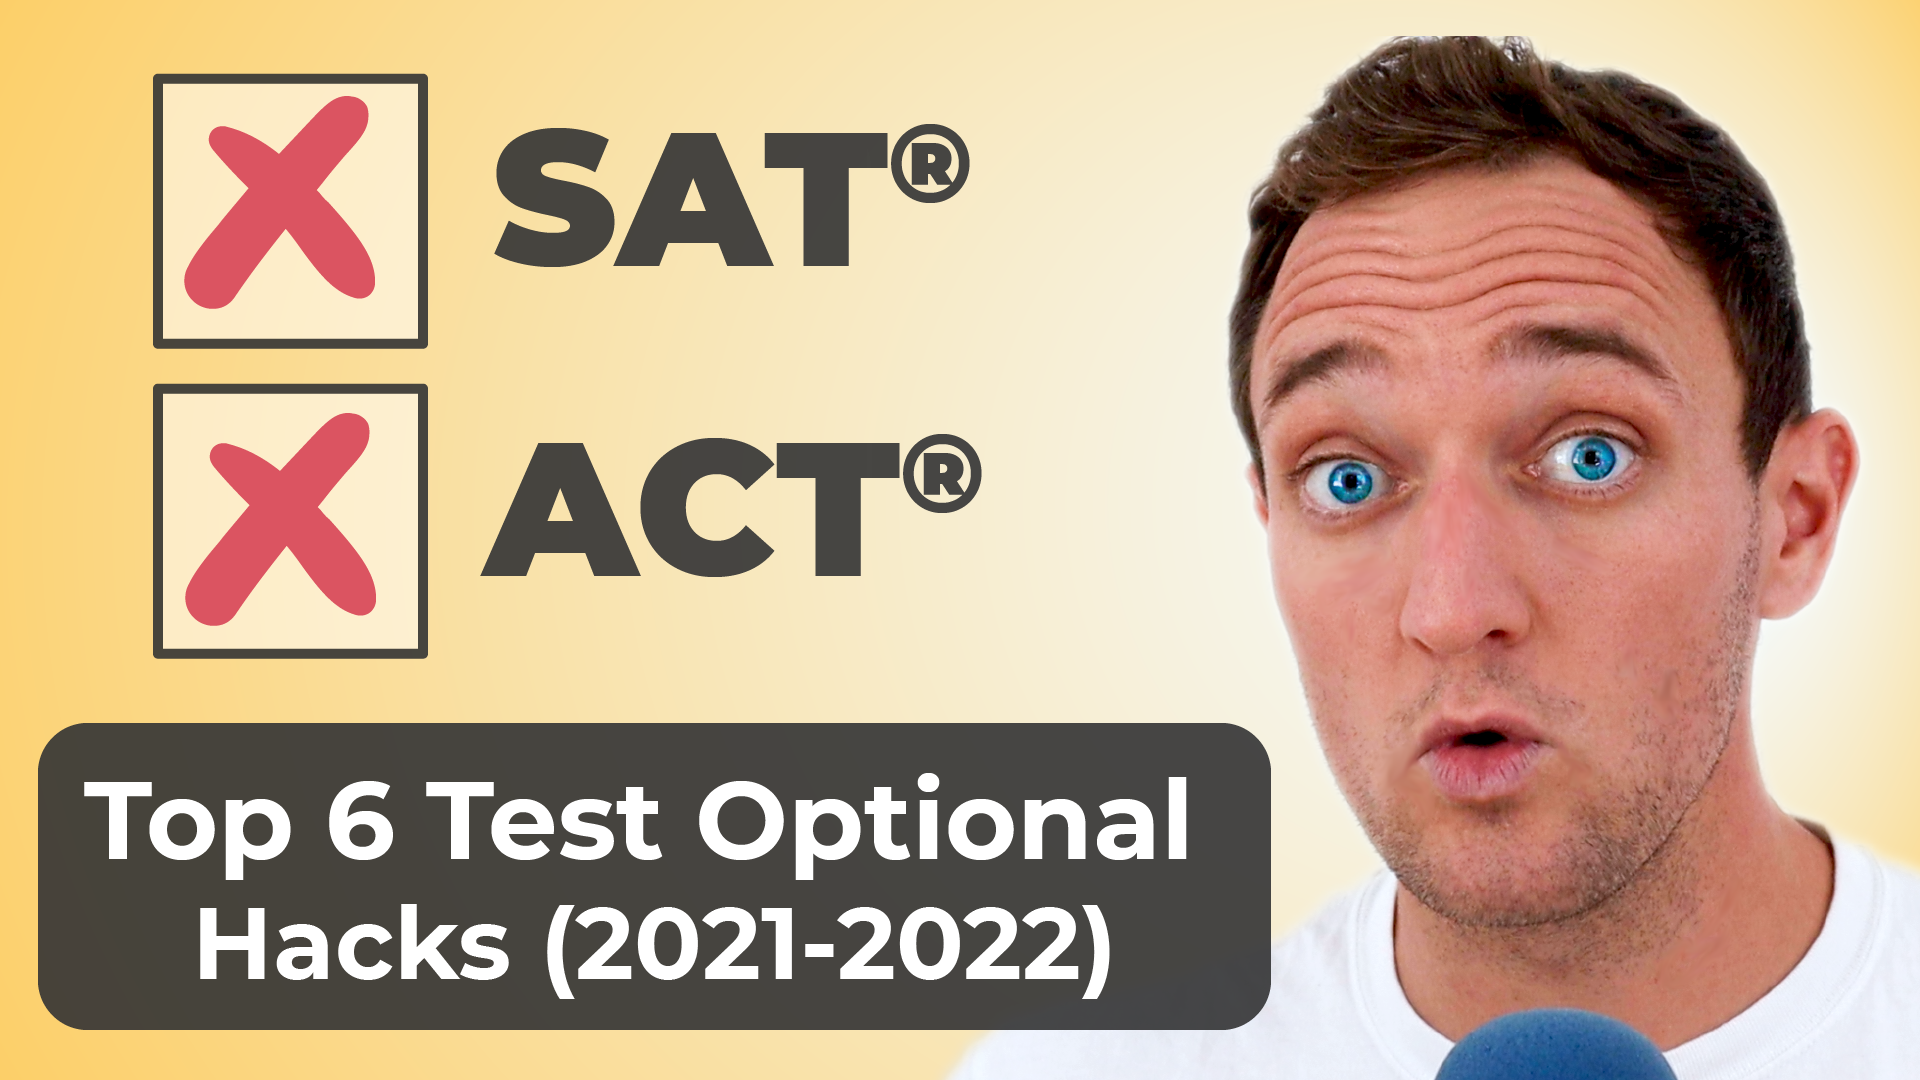 Top 6 Test-Optional Tricks and Hacks for 2021 and 2022